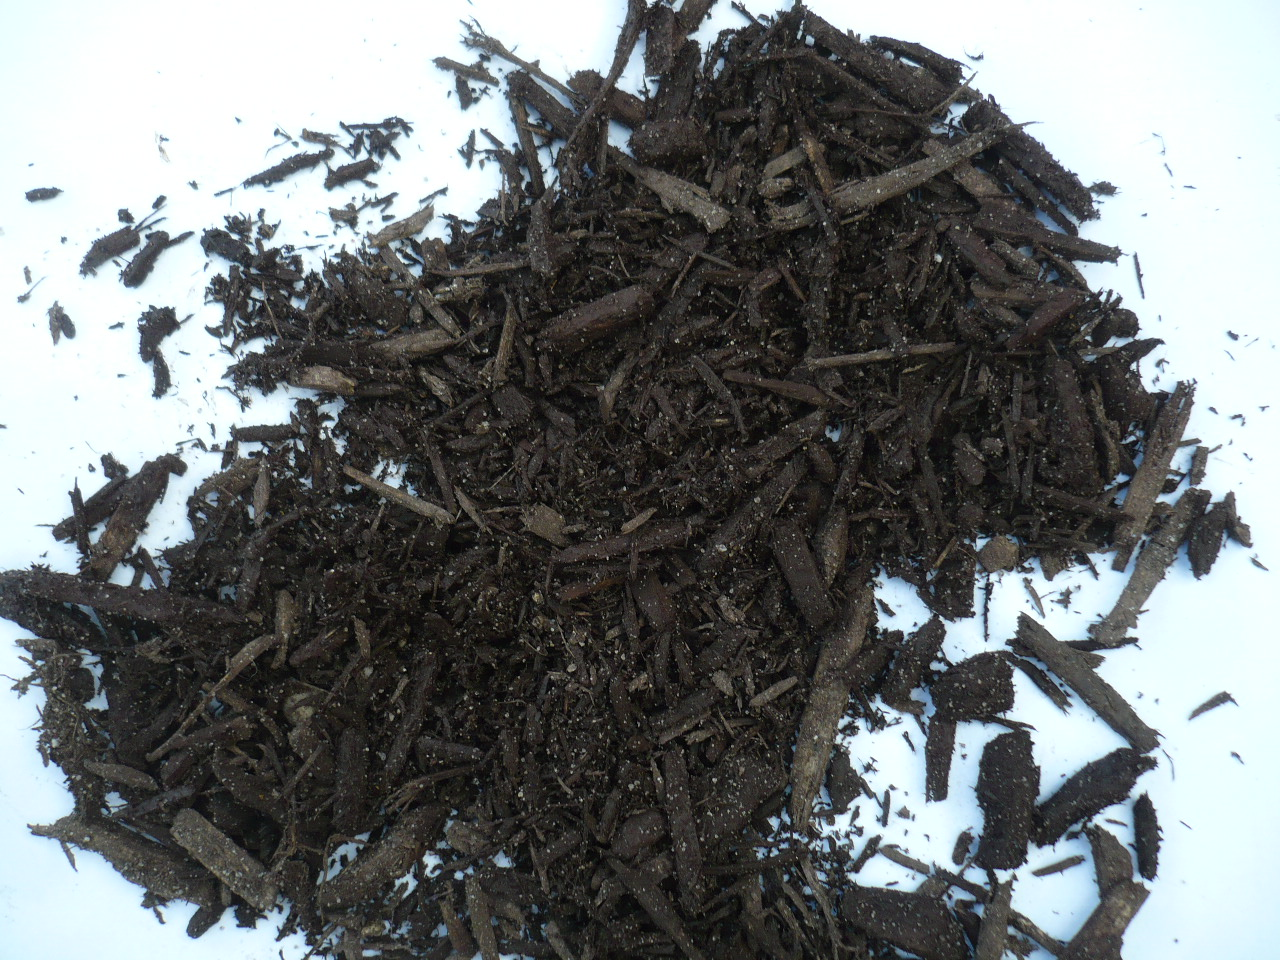 Black or Brown Wood Chips Close Up